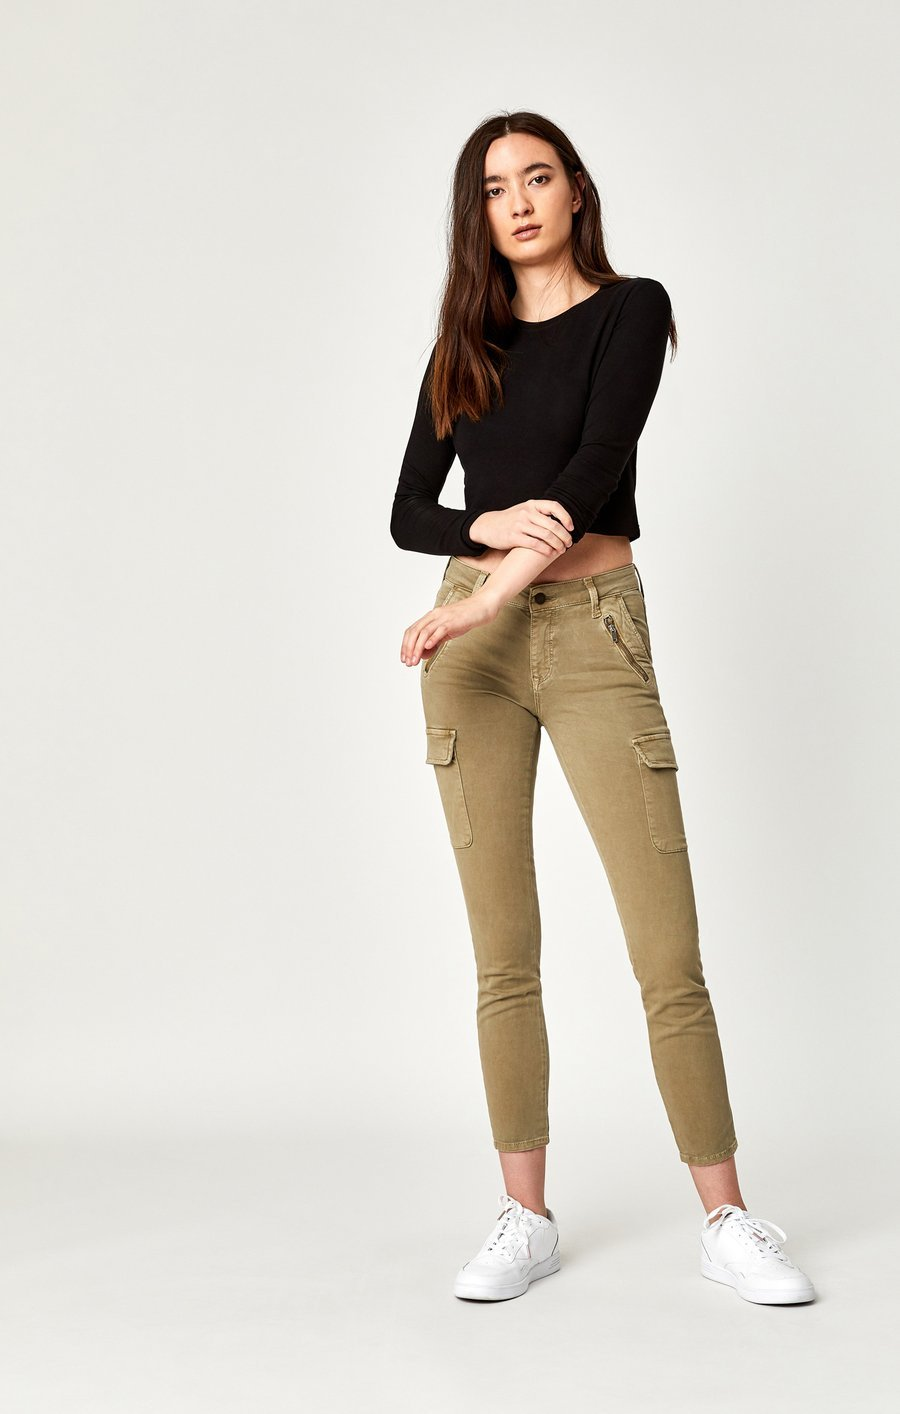 Juliette Khaki Washed Twill